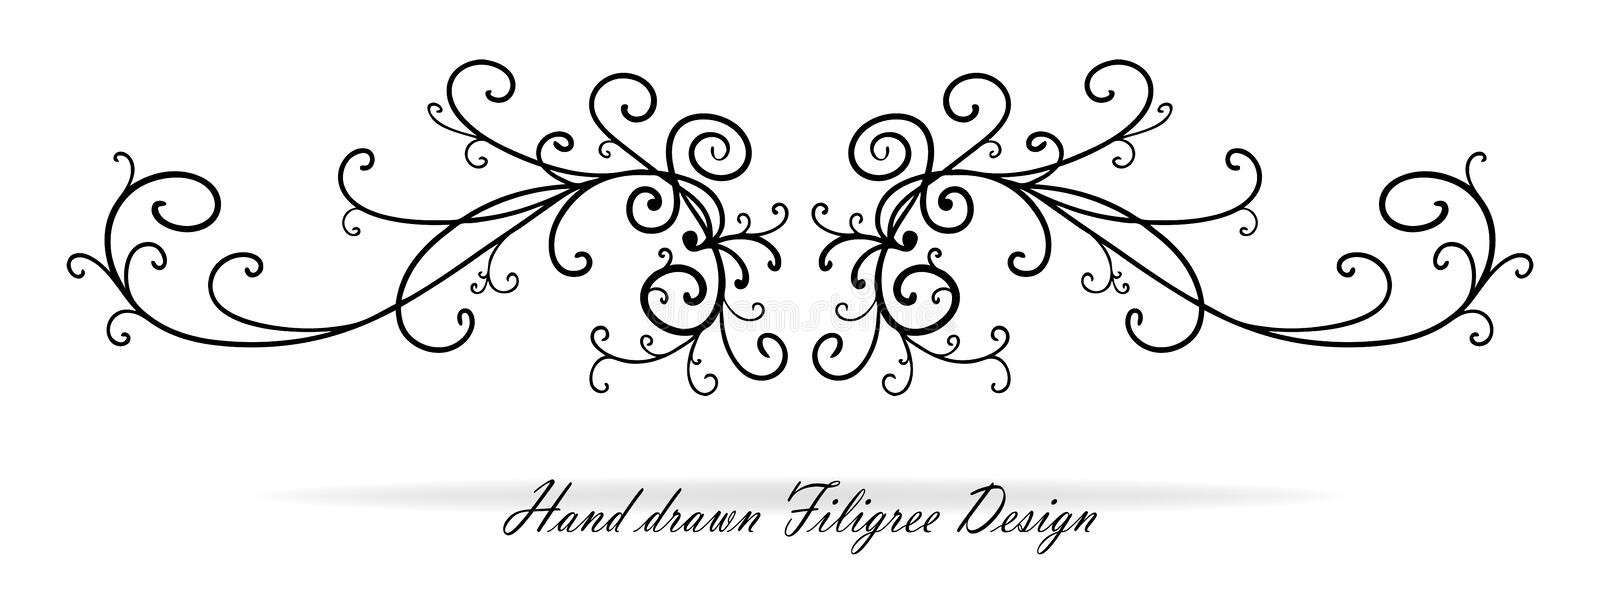 Beautiful fancy scroll design, paragraph or text underline, wedding design element royalty free stock photography